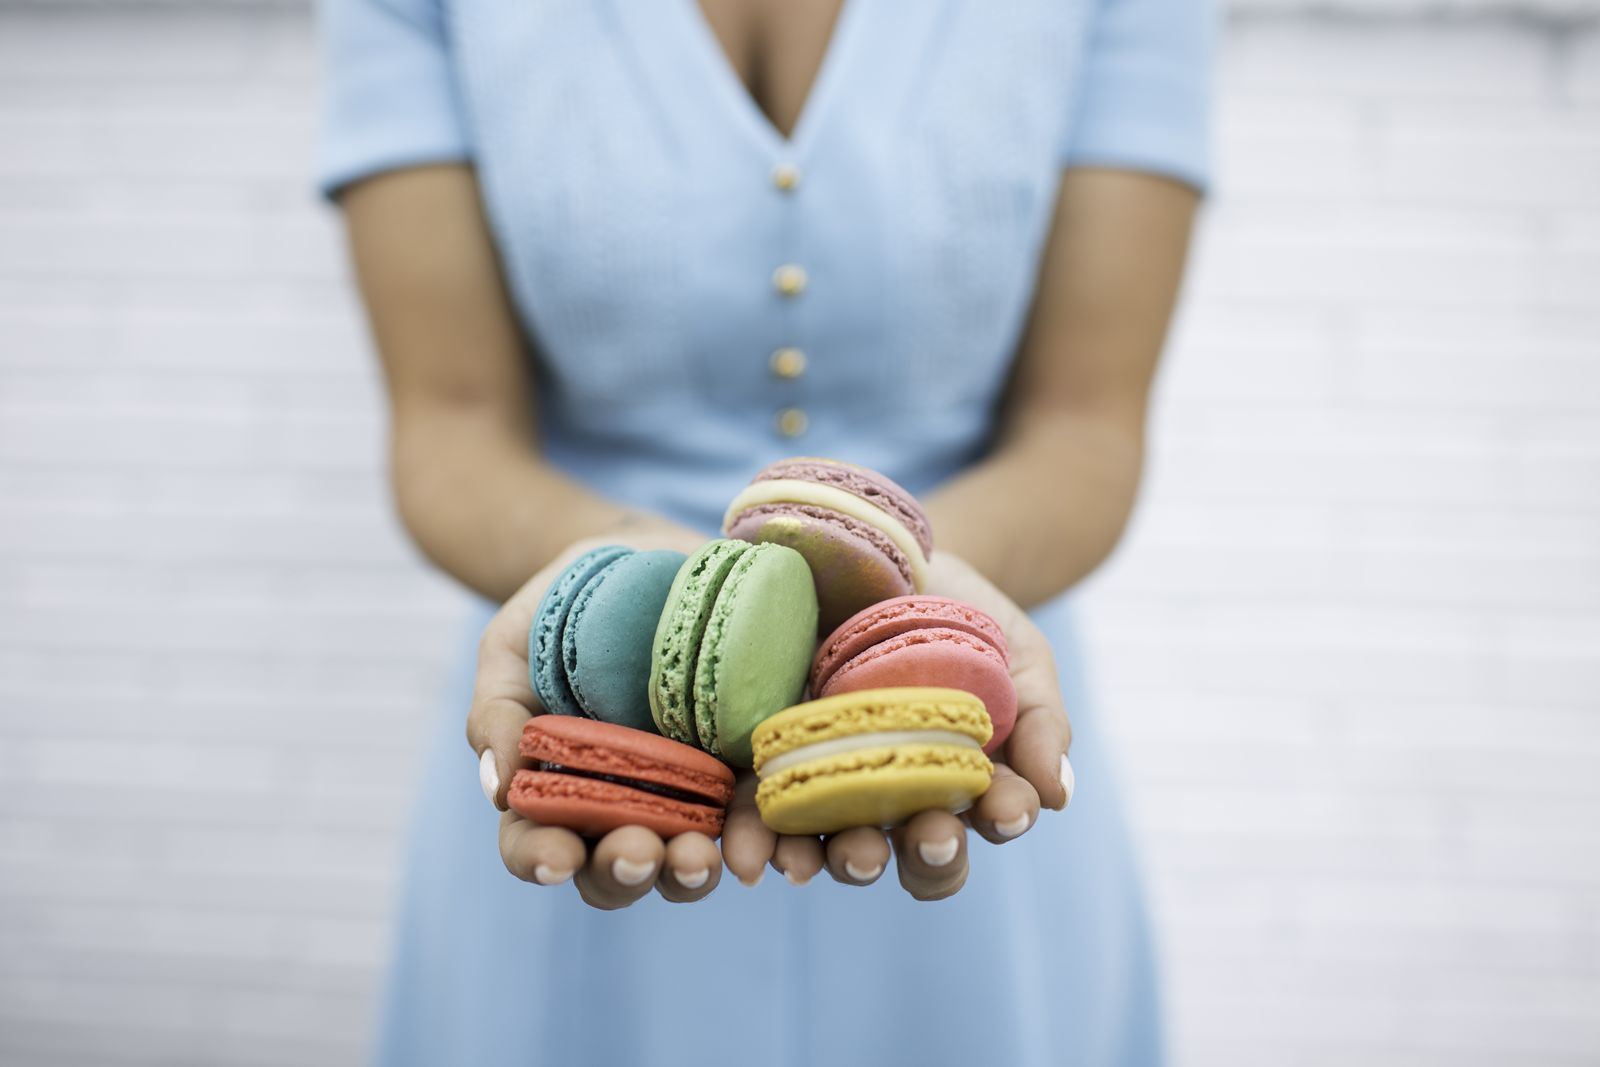 The BIGGEST Macaron Event of the Year Is Giving Sweets and Giving Back!